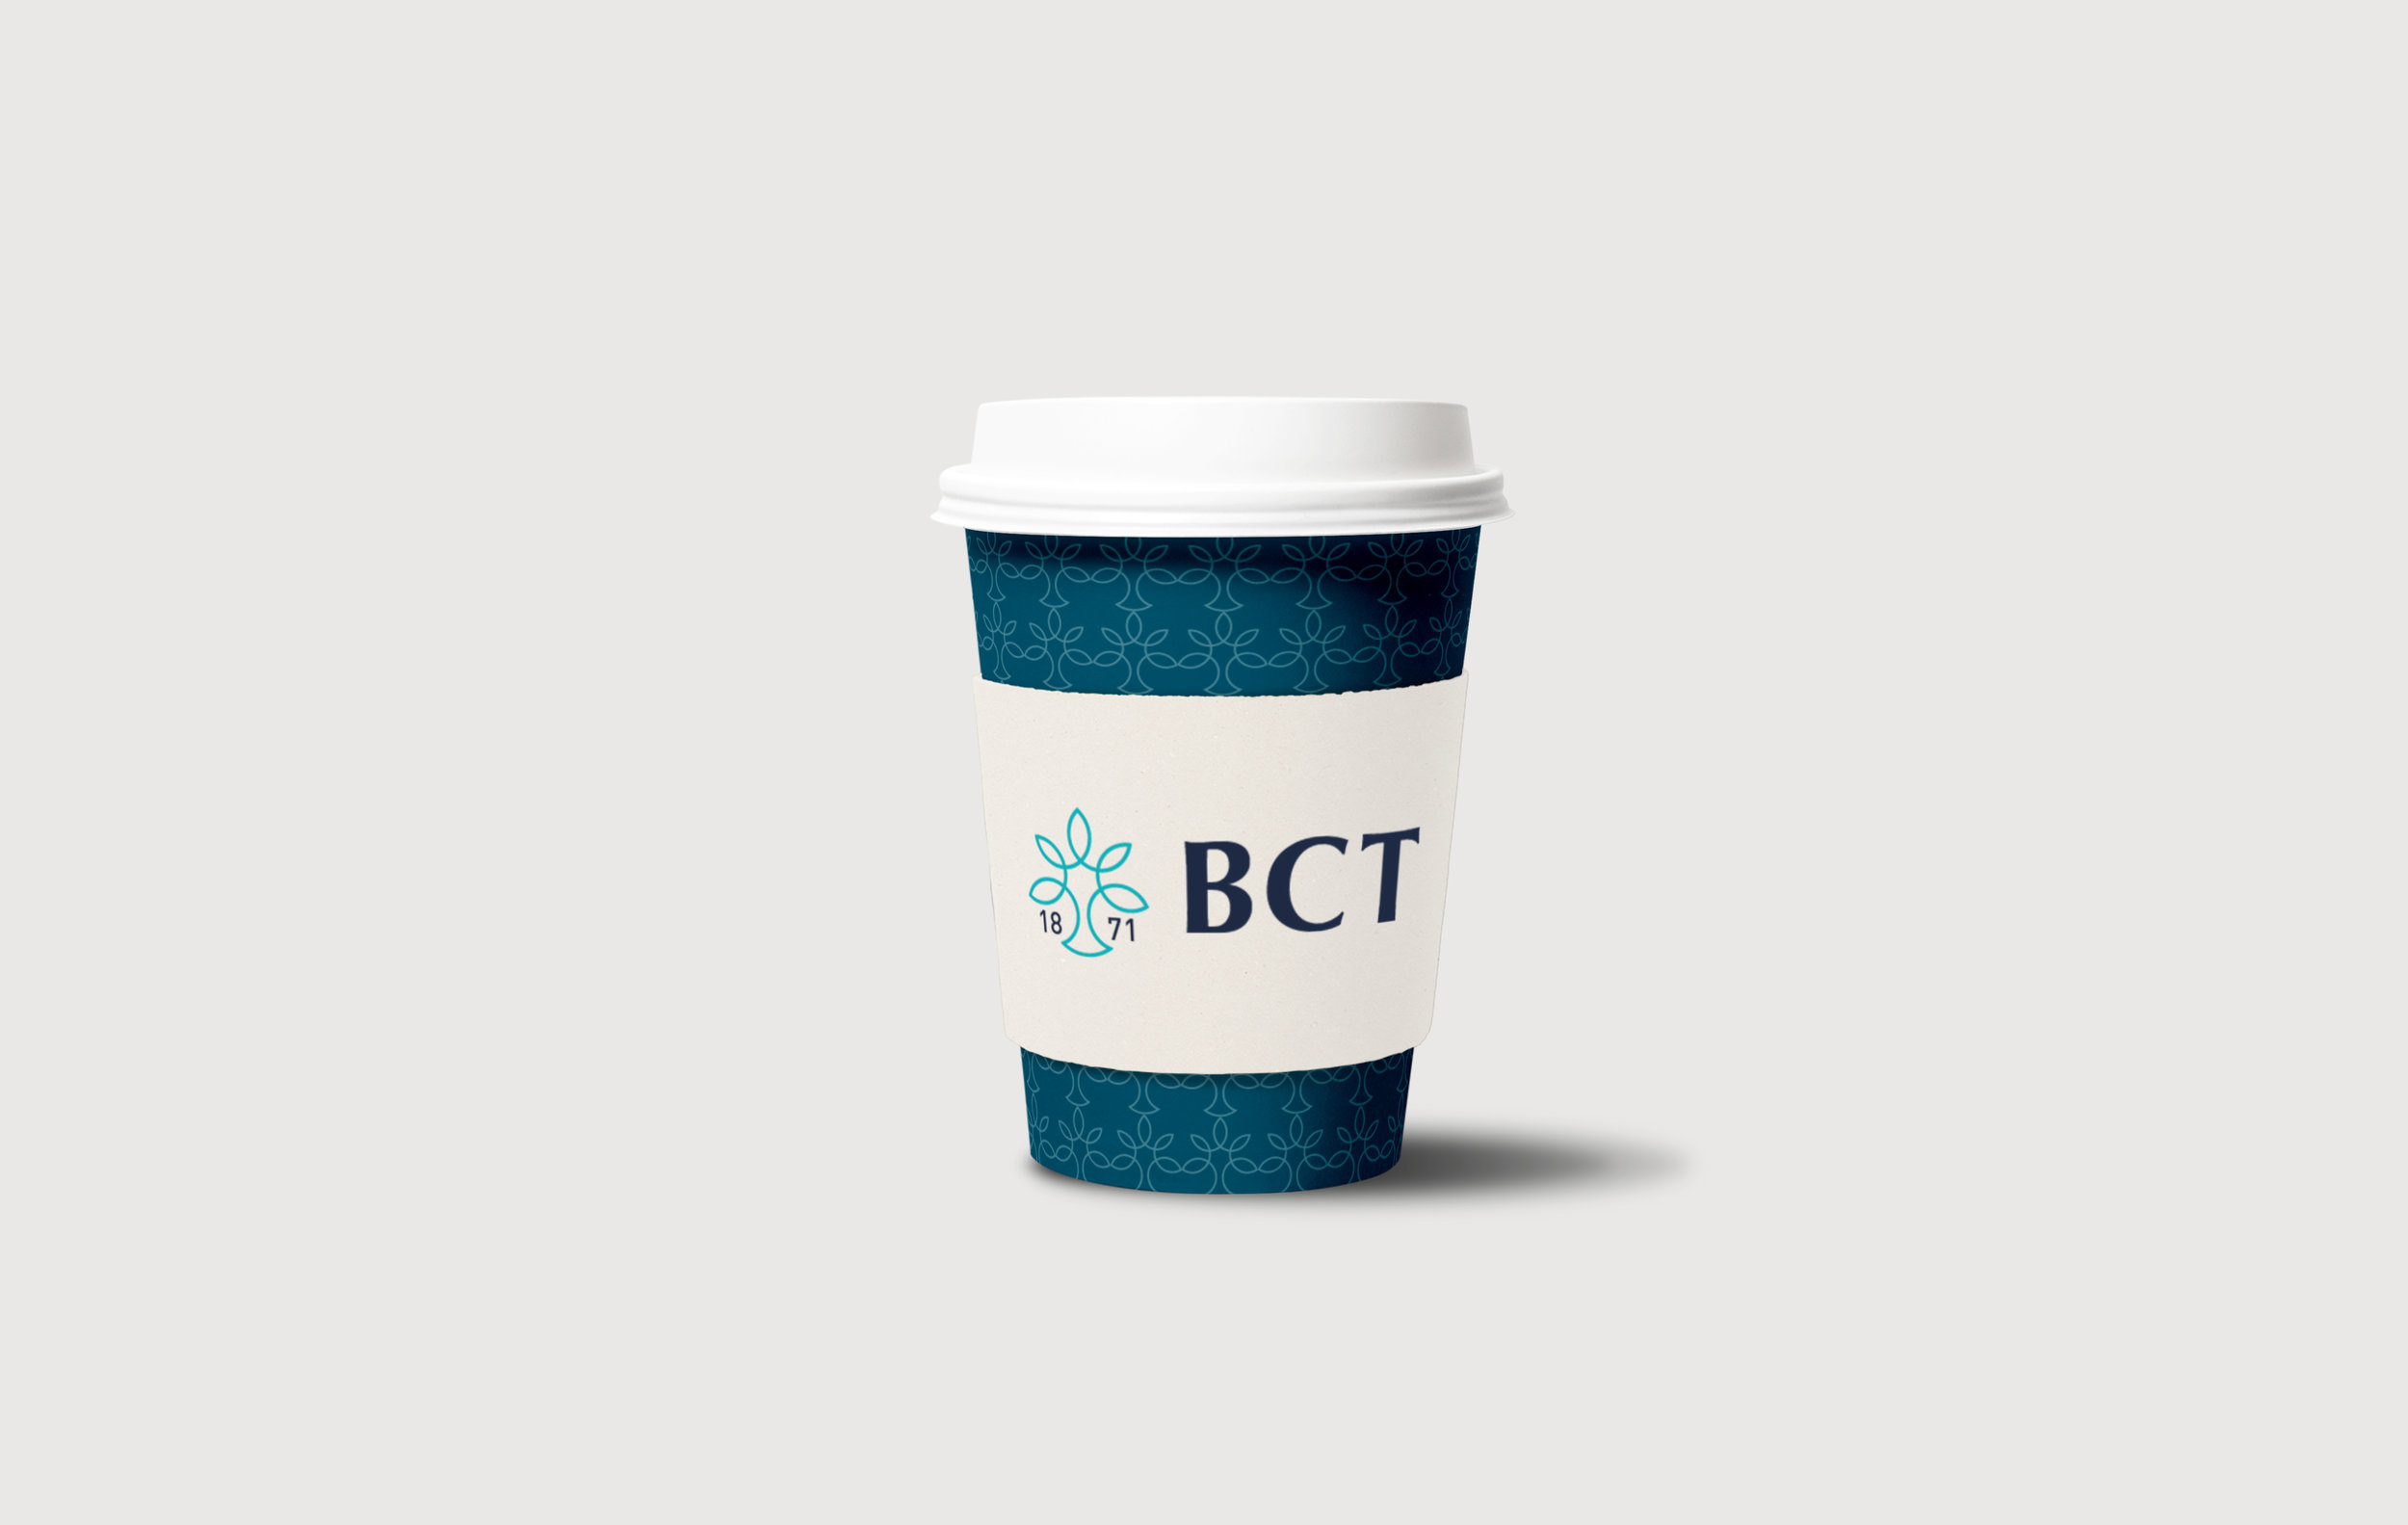 BCT_Stationary_Cup.jpg